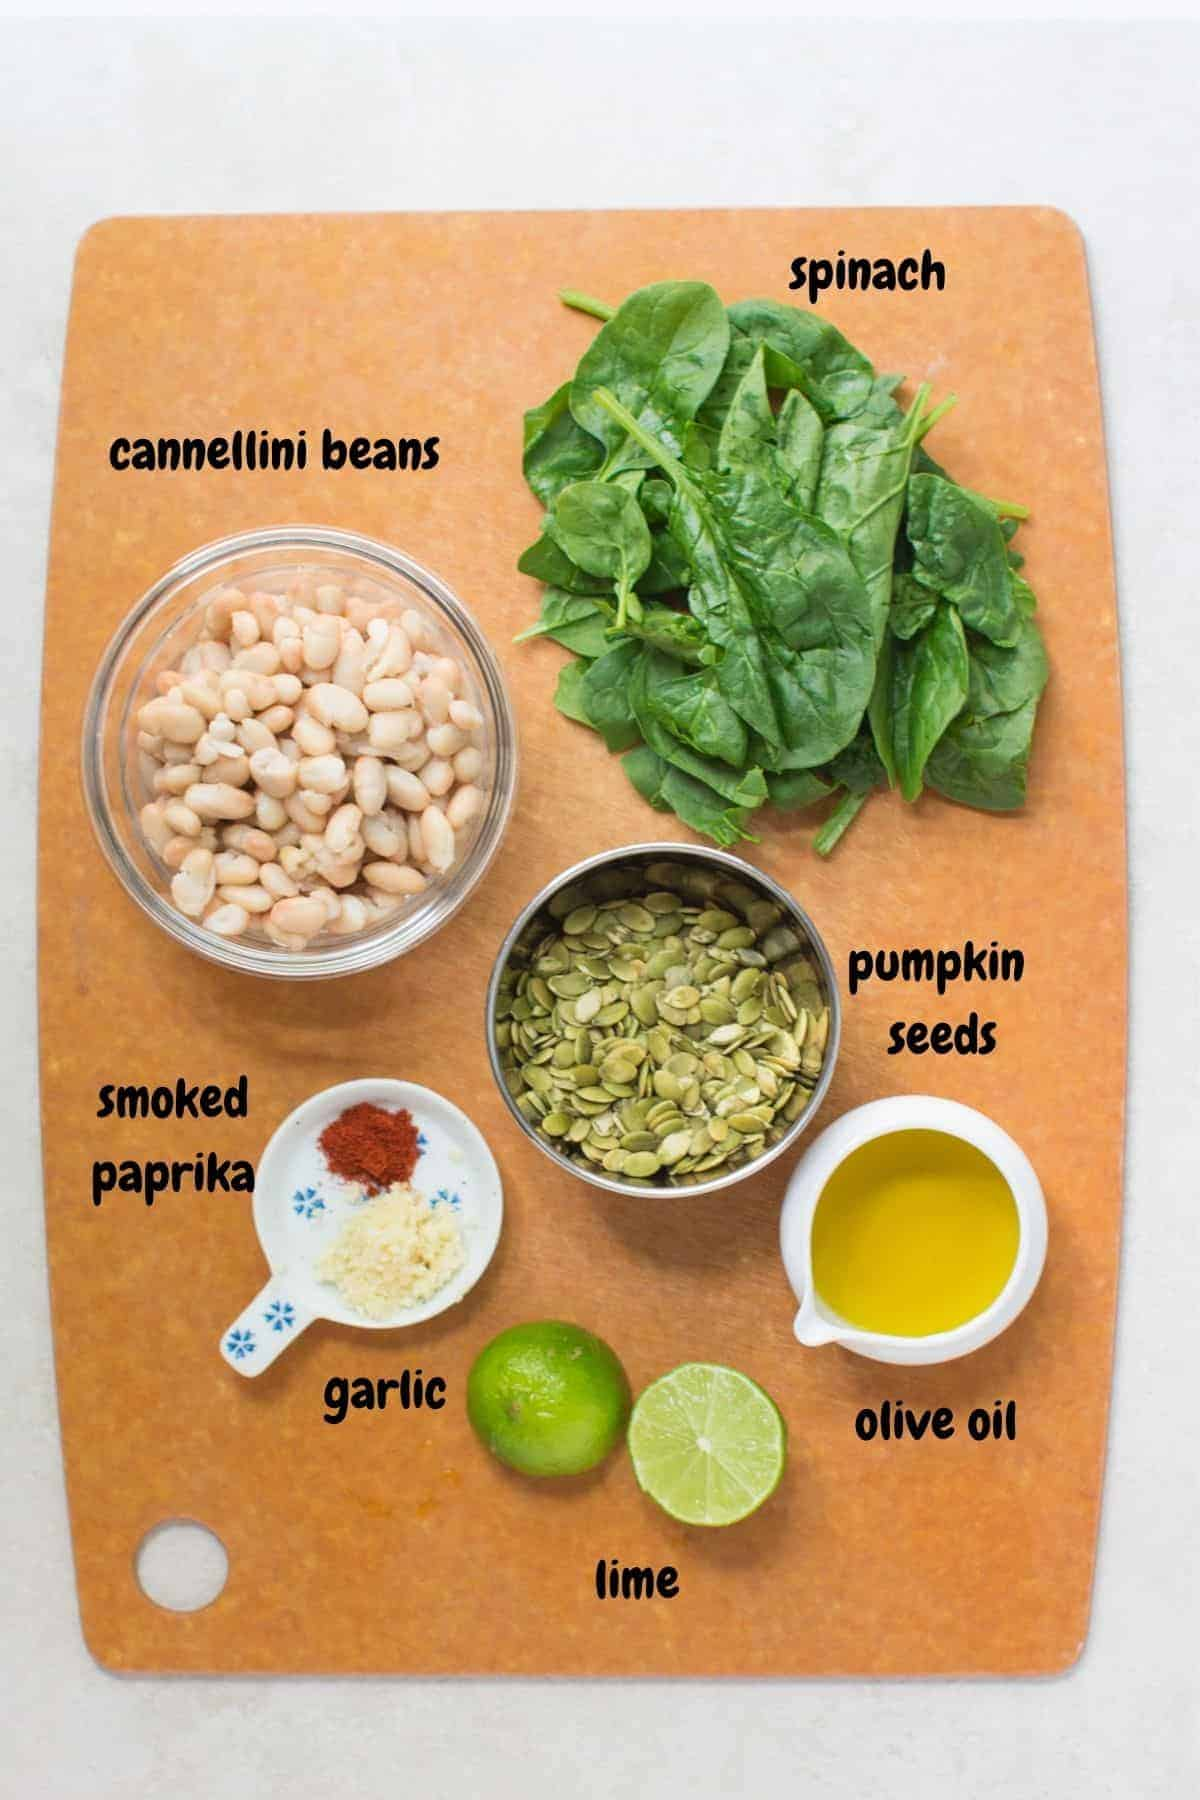 all the ingredients for the hummus placed on wooden board